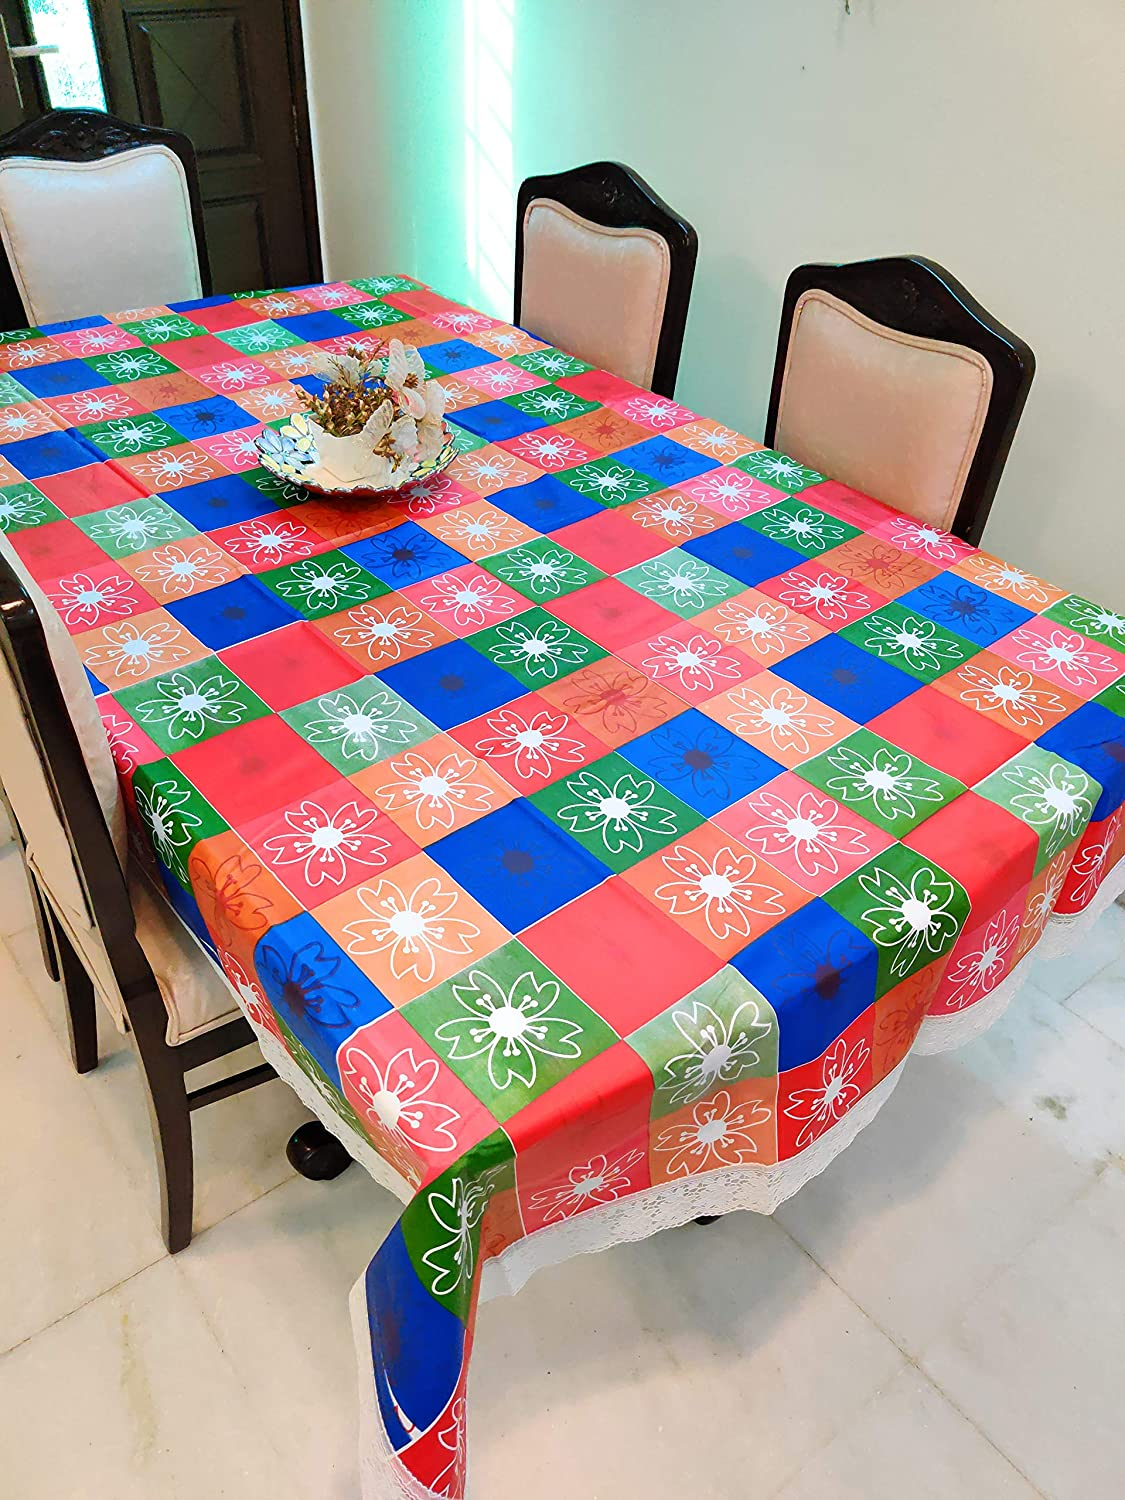 Buy Casa Nest Thick Pvc Printed Dining Table Cover 4 Seater Size 40x60 Inch Waterproof Easy To Clean Blue Multi Color Online At Low Prices In India Amazon In